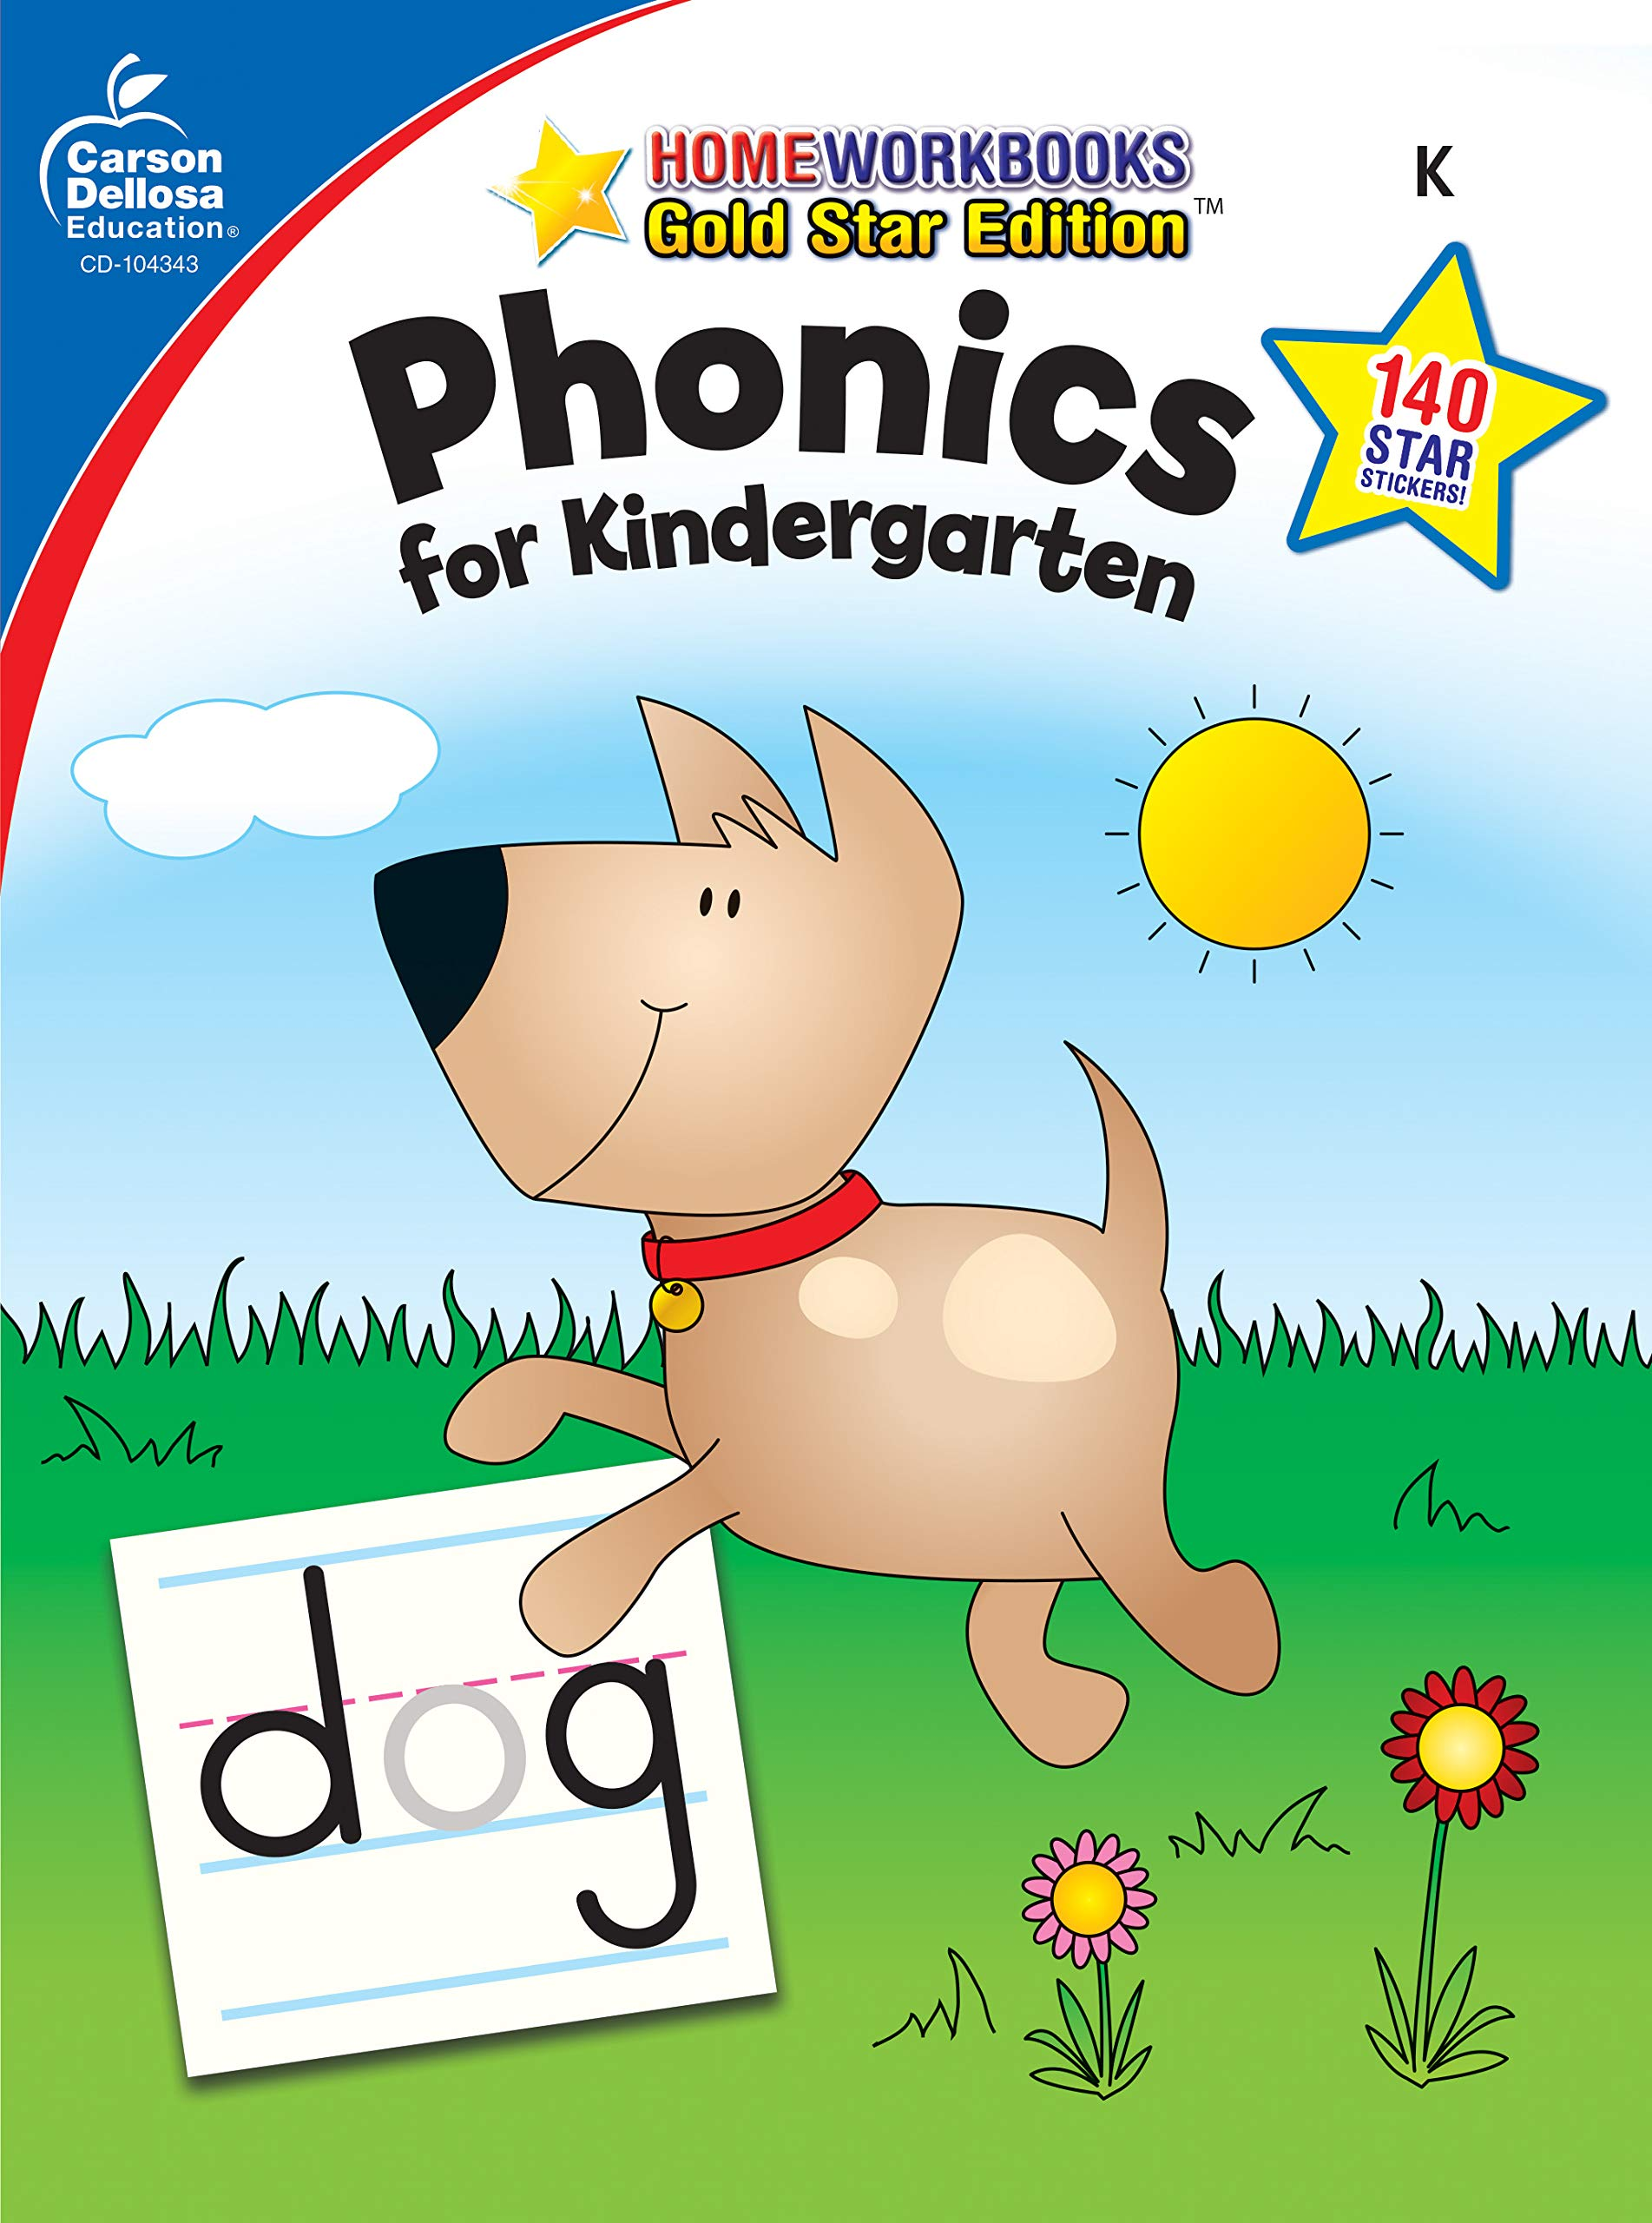 graphic about Home and Family Christmas Workbook named Phonics for Kindergarten, Quality K (Household Workbook)